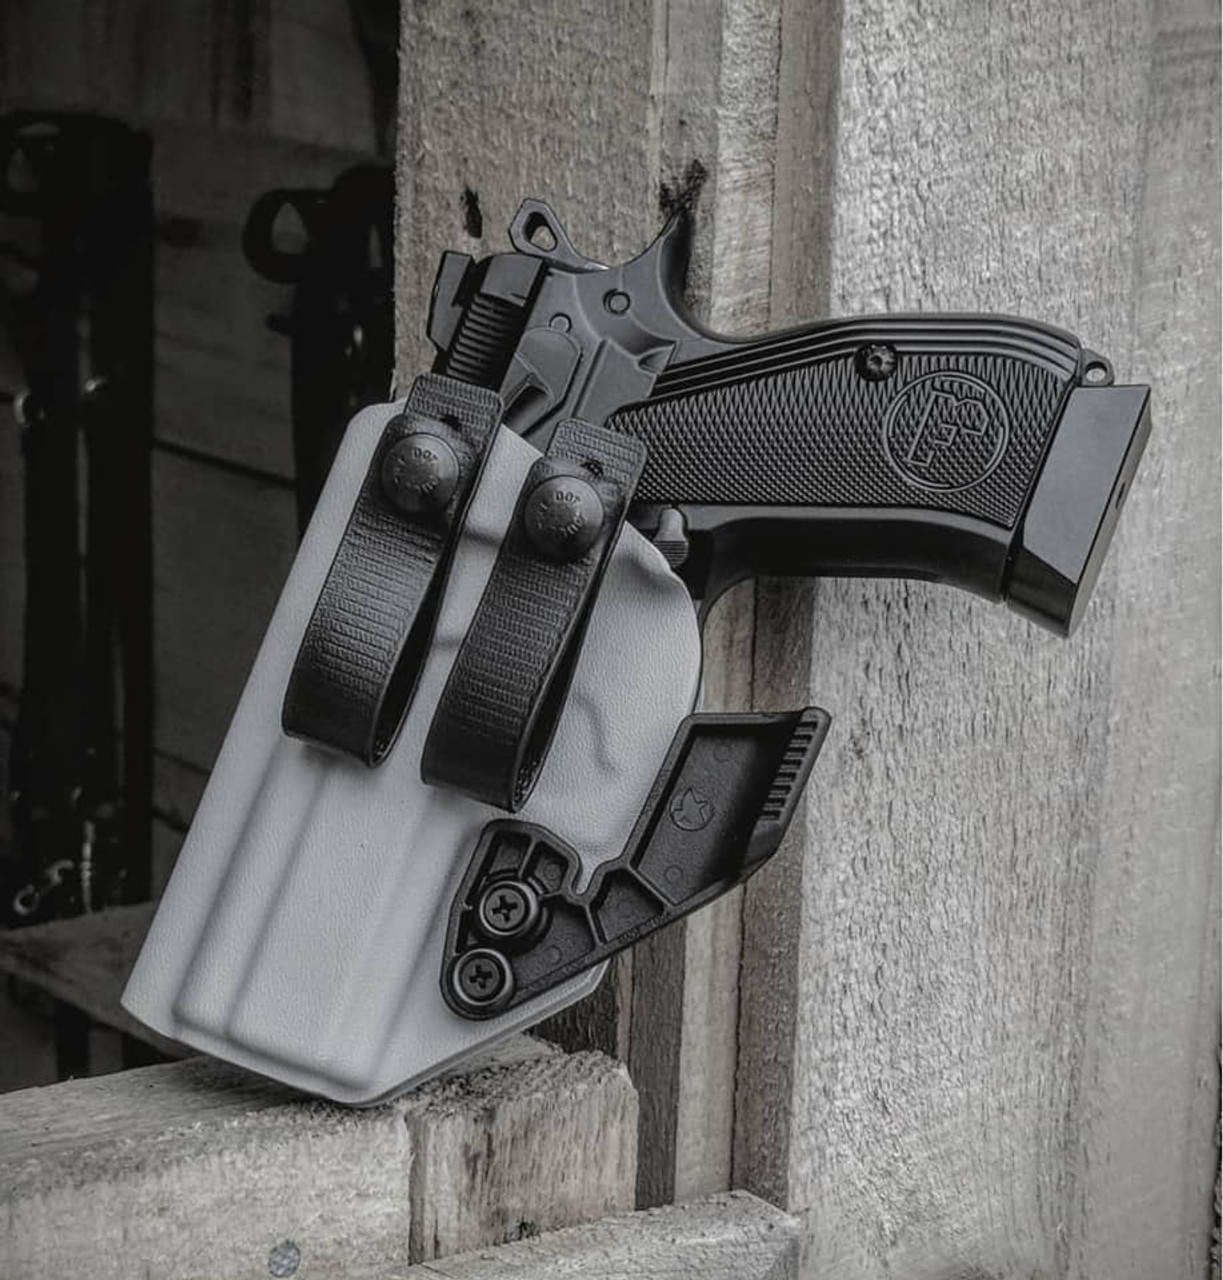 CZ P-01 Left Handed Holster with Soft Loops